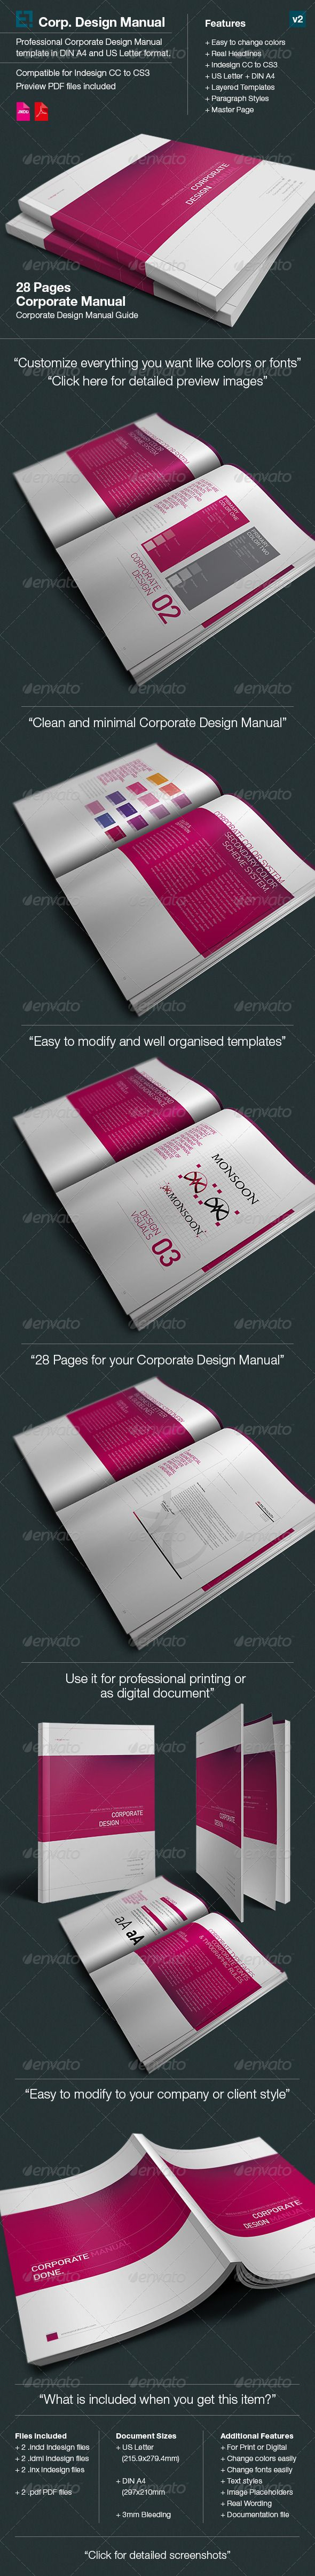 Corporate Design Manual Guide -  28 Pages Get the source files for download: http://graphicriver.net/item/corporate-design-manual-guide-28-pages/3286103